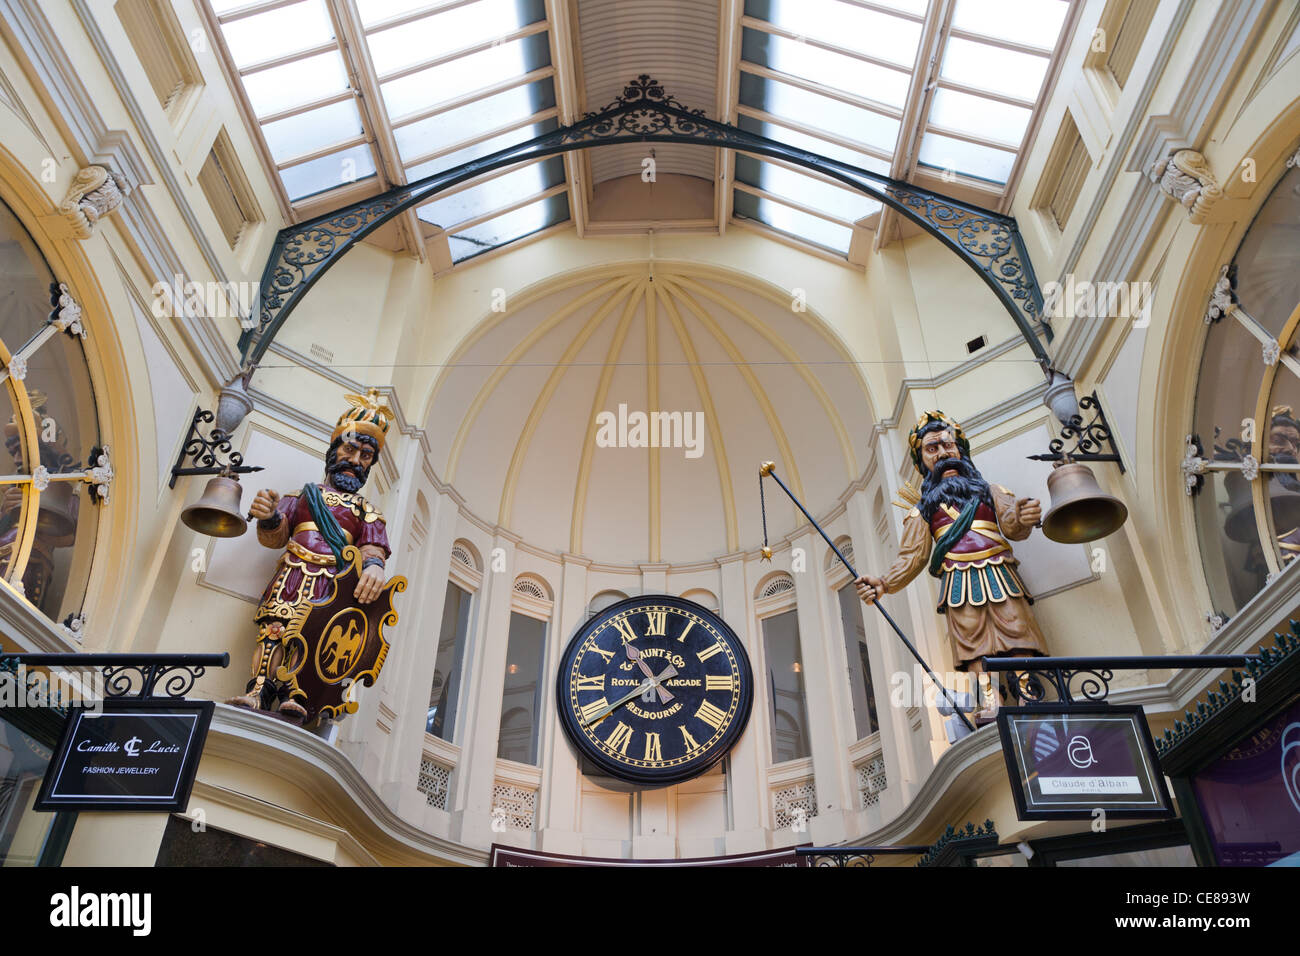 Clock details at the Royal Arcade Melbourne Australia - Stock Image